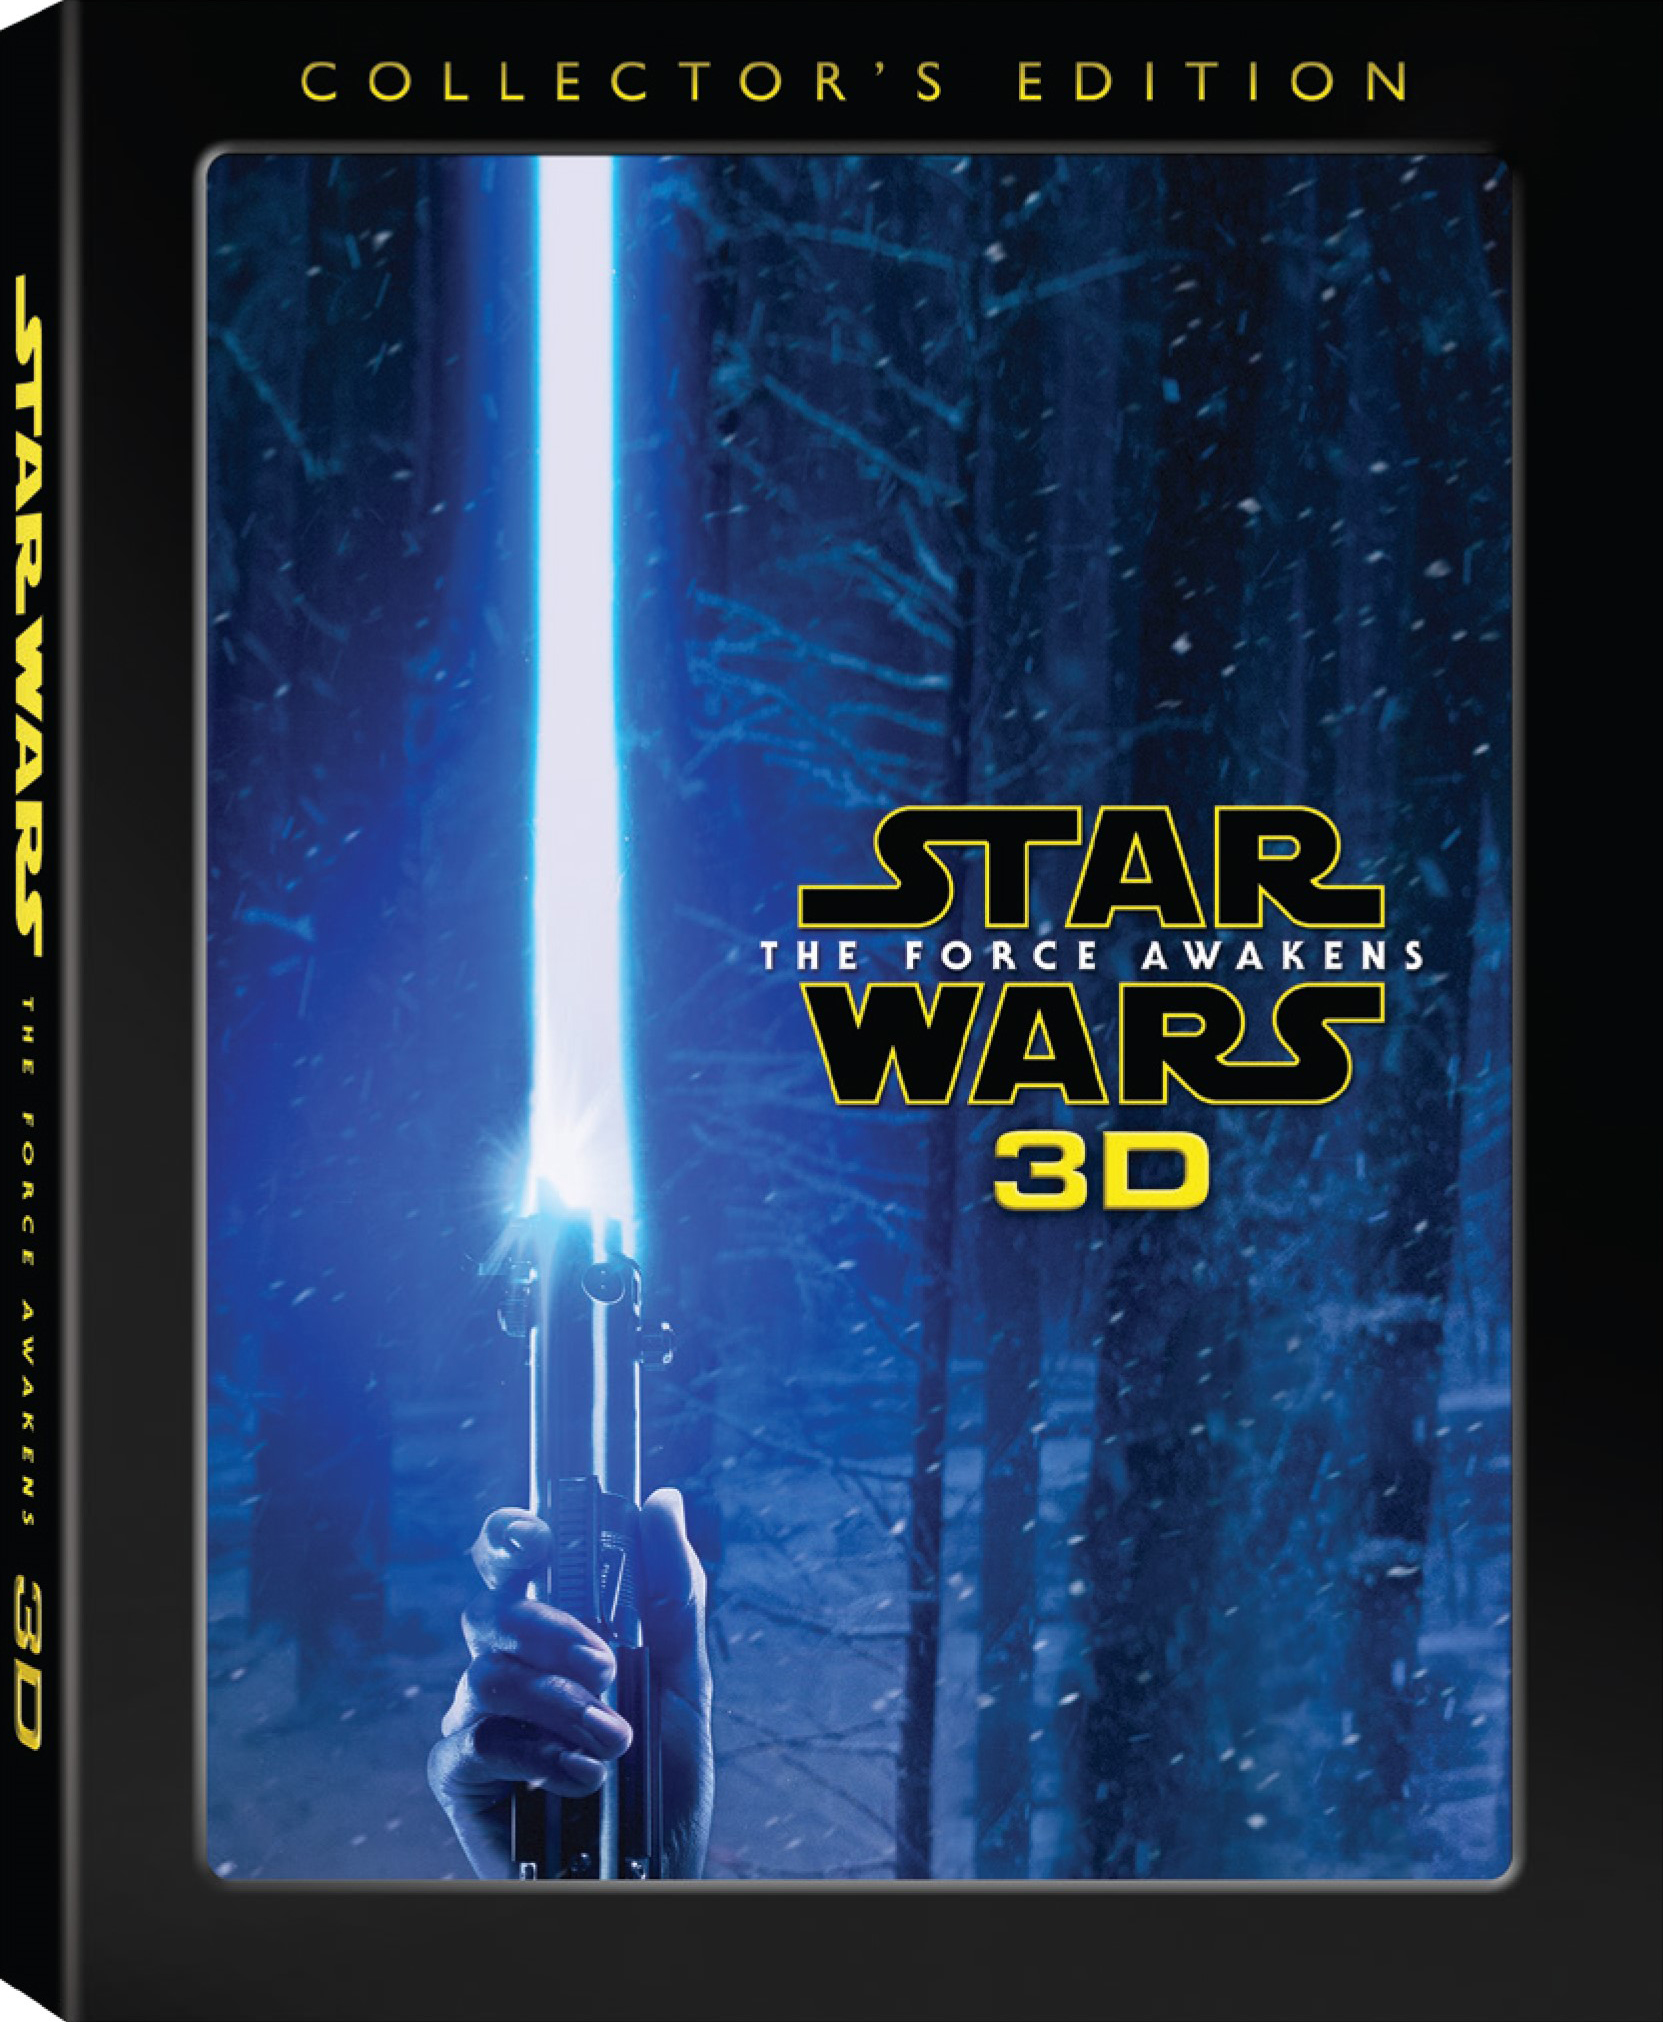 Star Wars: The Force Awakens (3D Blu-ray)